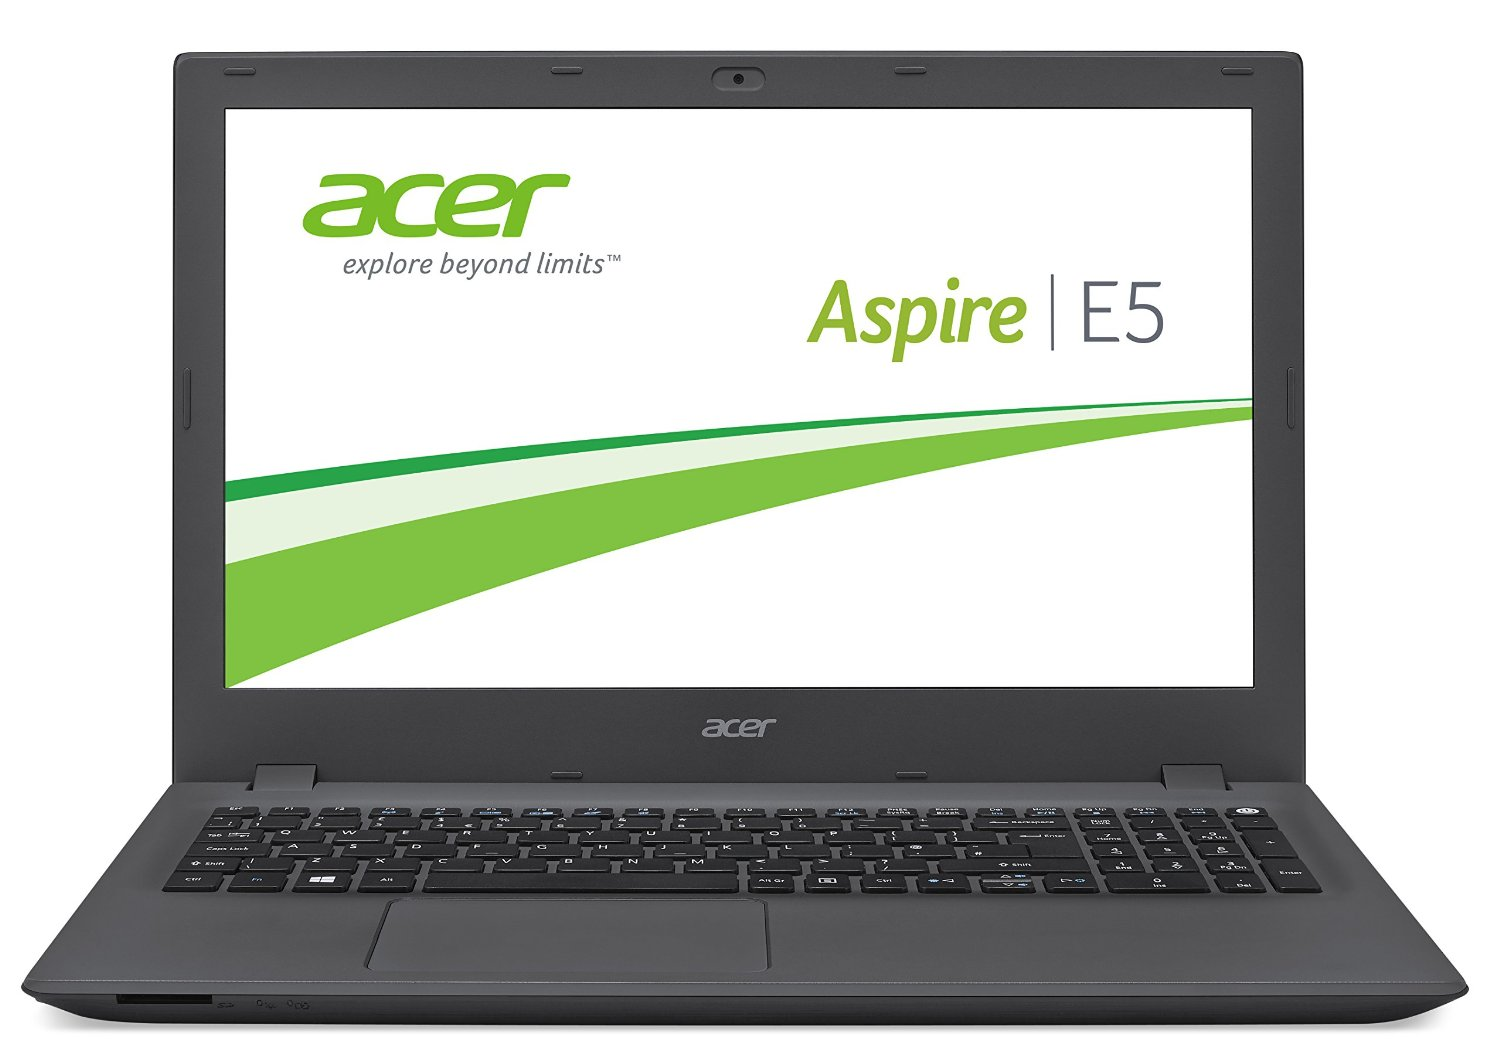 Acer Aspire E5-772G-56F3 43.9 cm (17.3 Zoll) Notebook